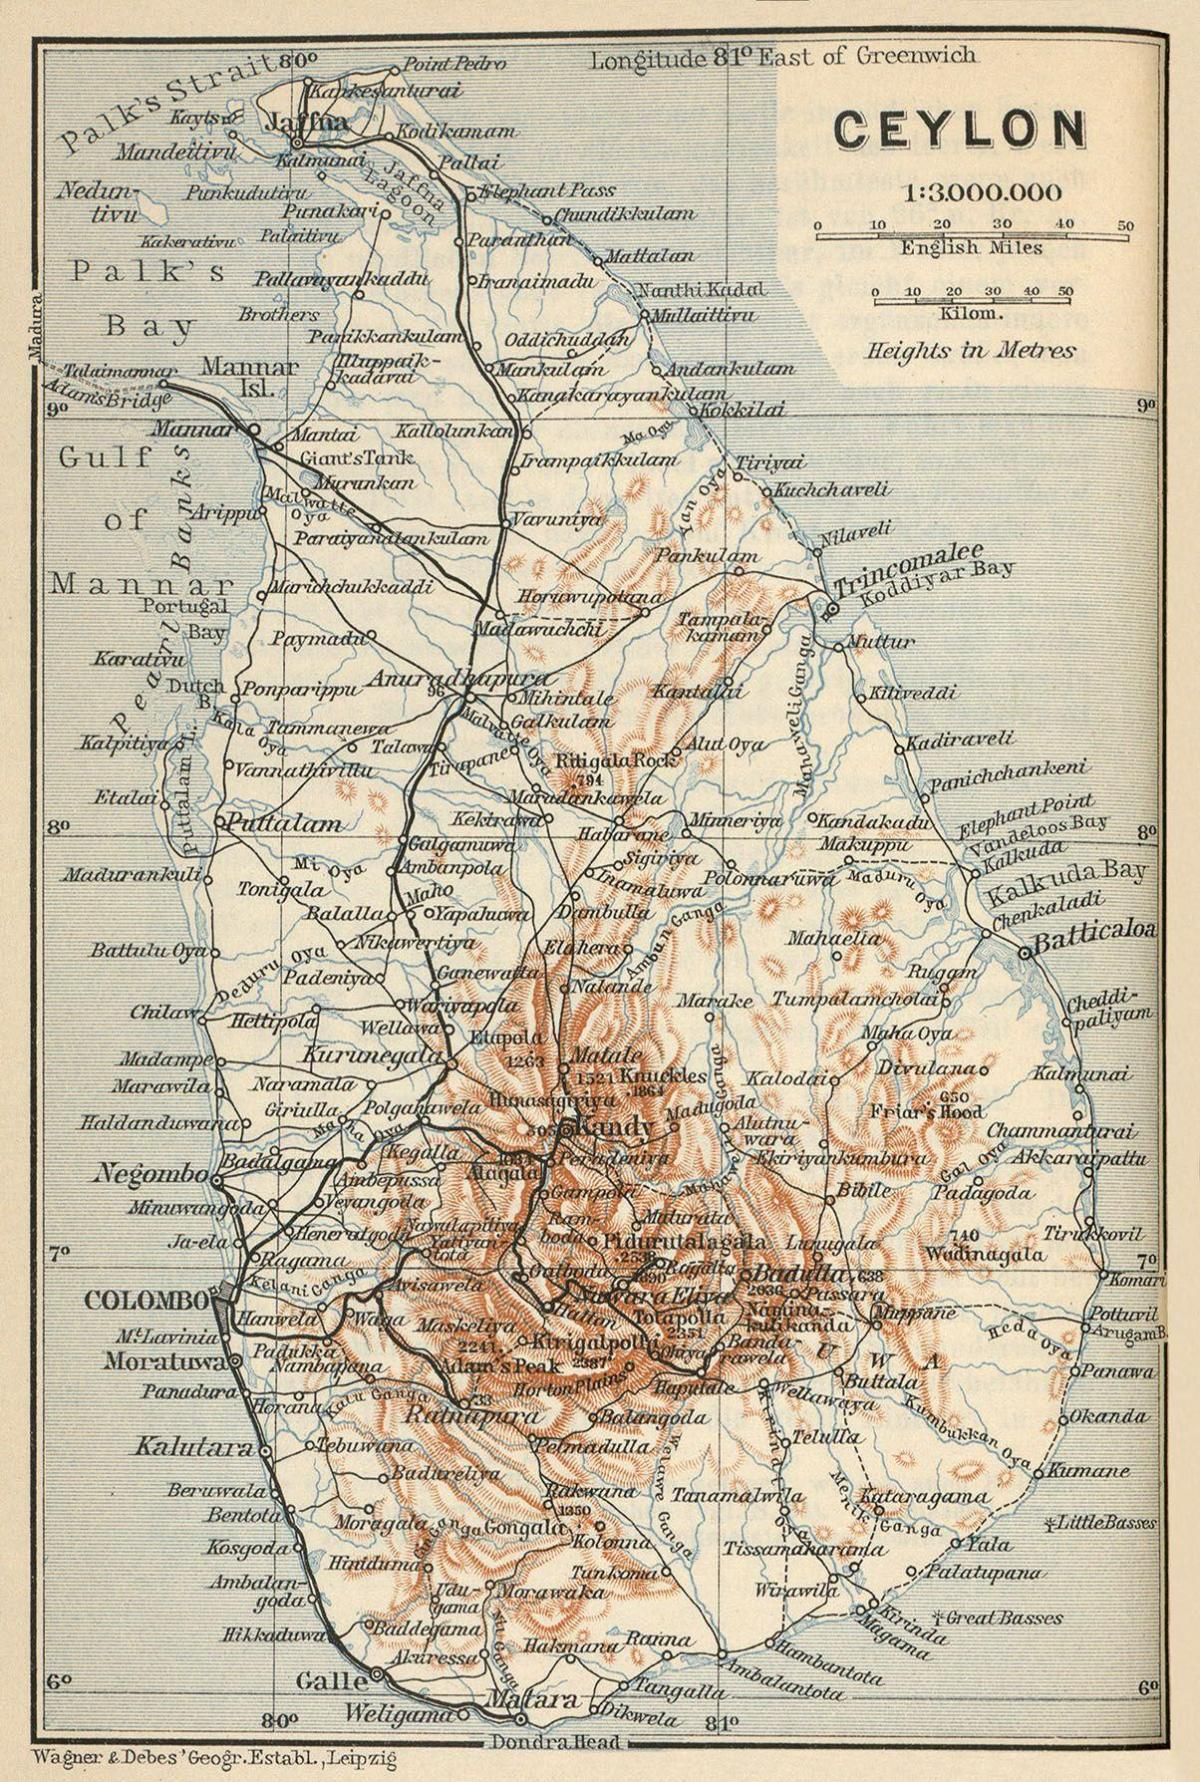 Ceylon on map